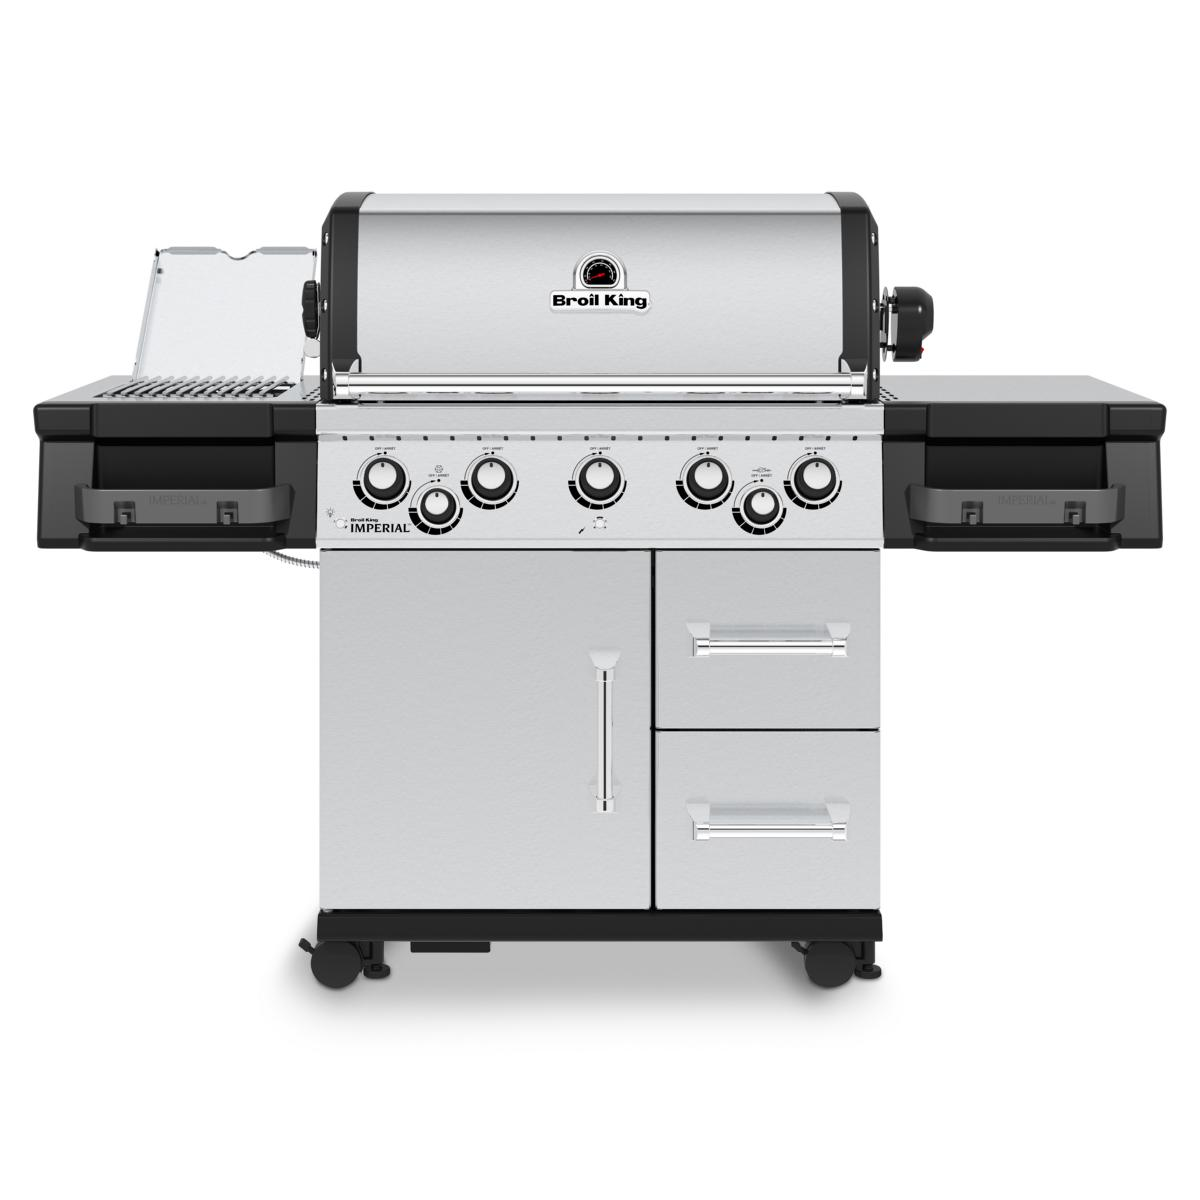 Broil King Imperial S590 PRO IR Gasgrill